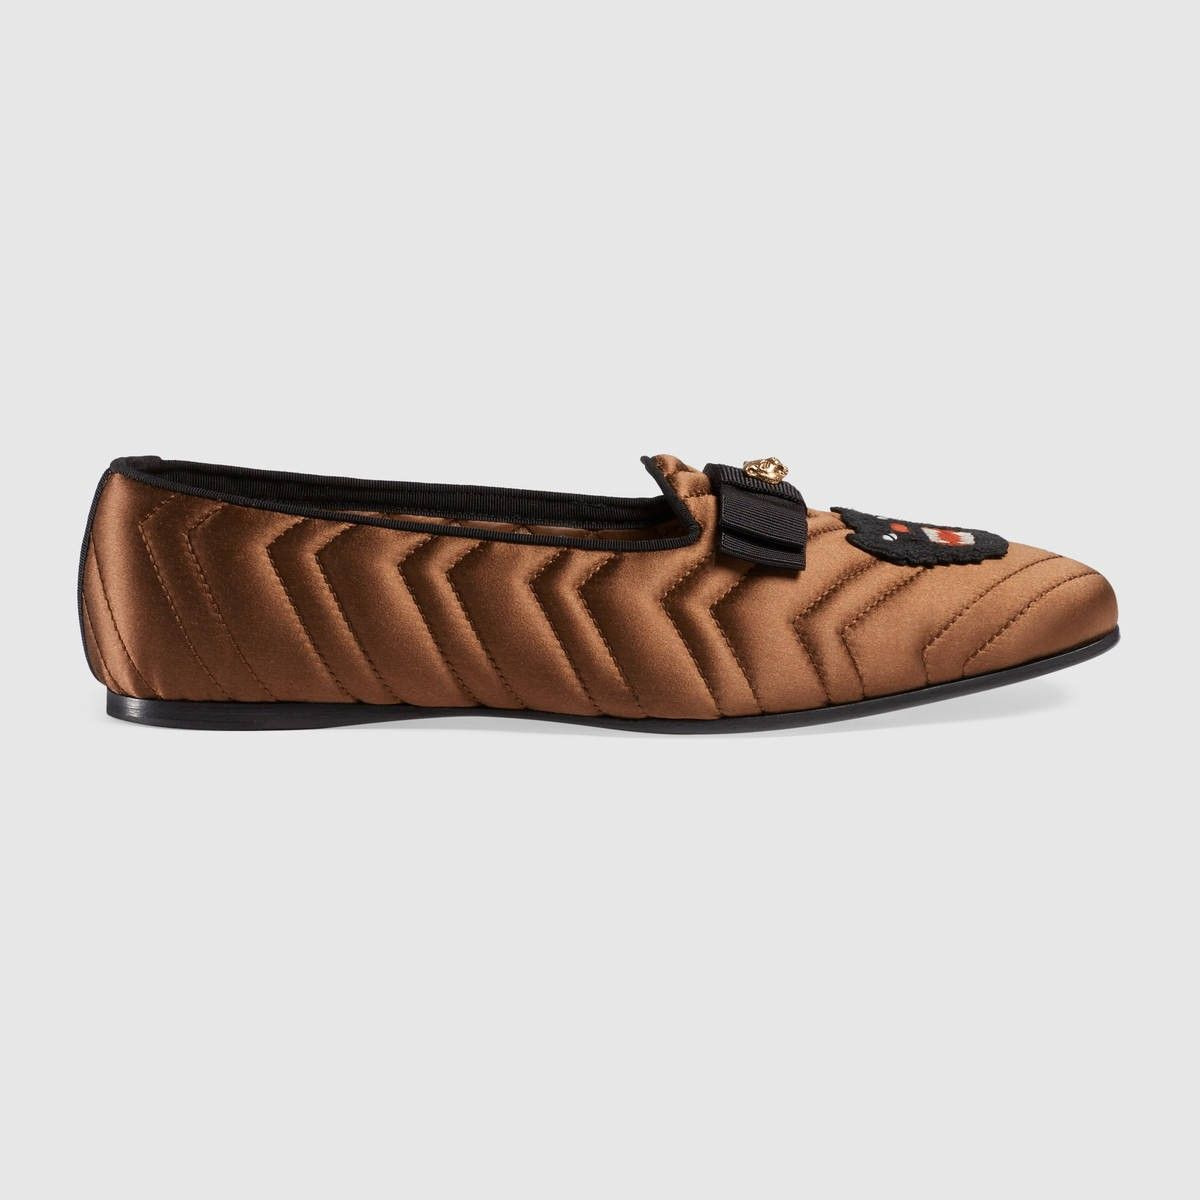 6a38c5e7dd7 GUCCI Silk Loafer With Panther - Brown Silk.  gucci  shoes  all ...